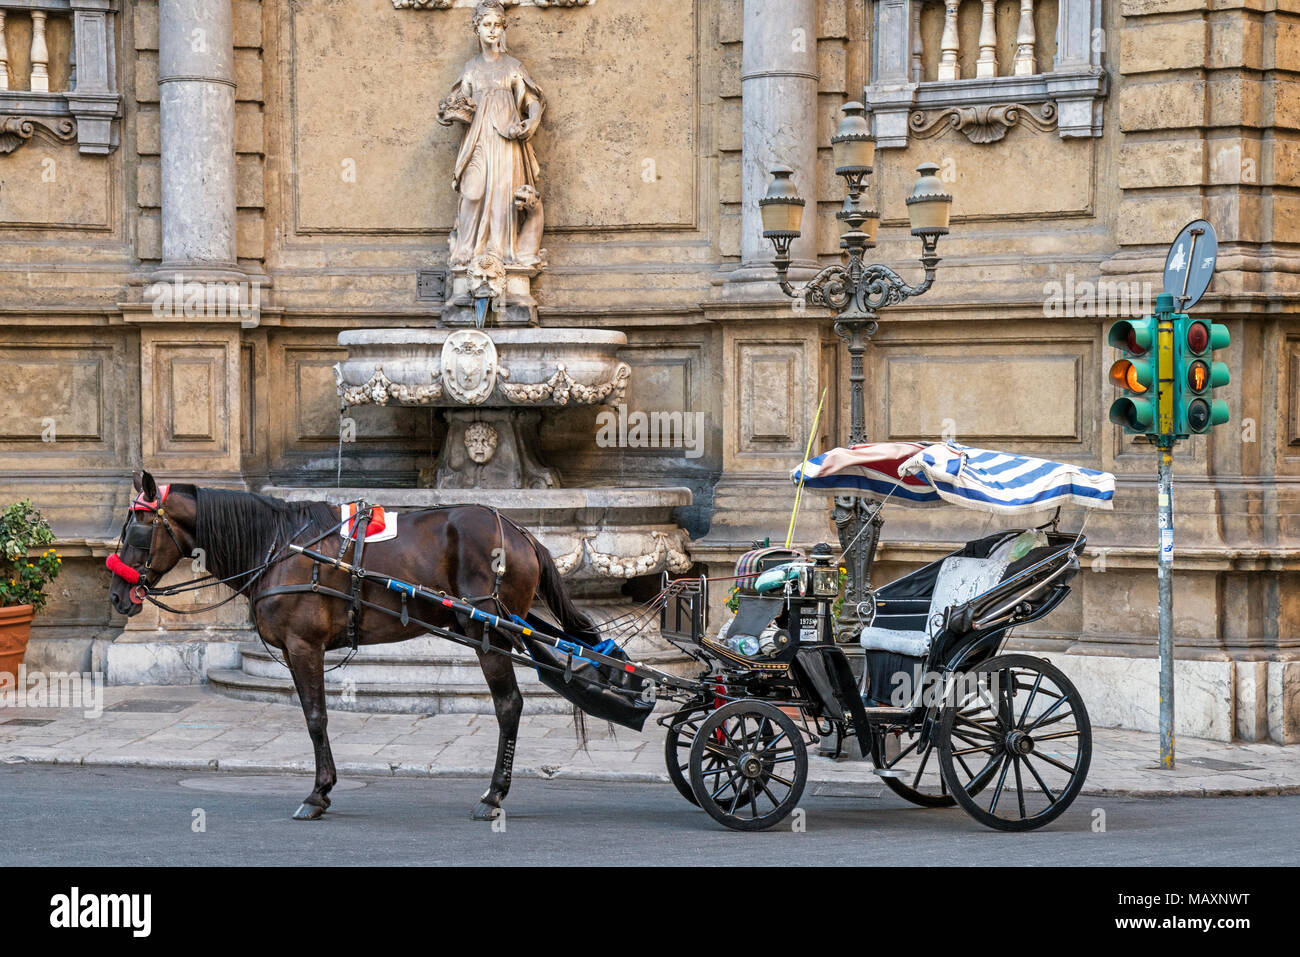 A horse and carriage at Quattro Canti in Palermo, Sicily. - Stock Image